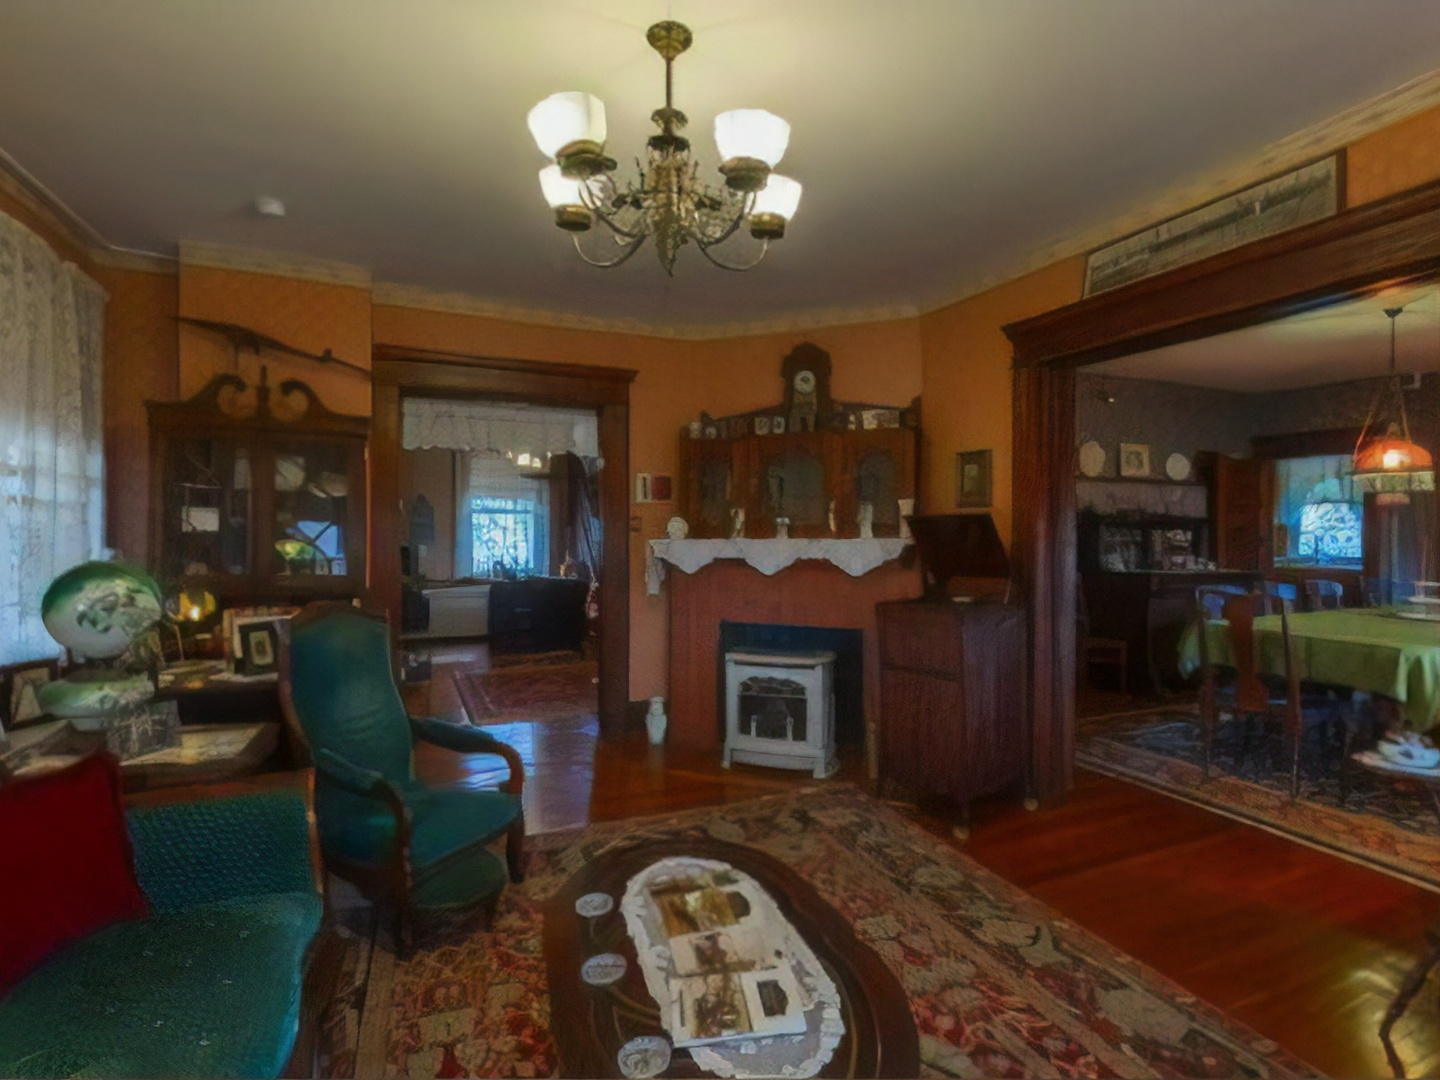 A view of a living room filled with furniture and a fireplace at Candlelight Inn Bed & Breakfast.